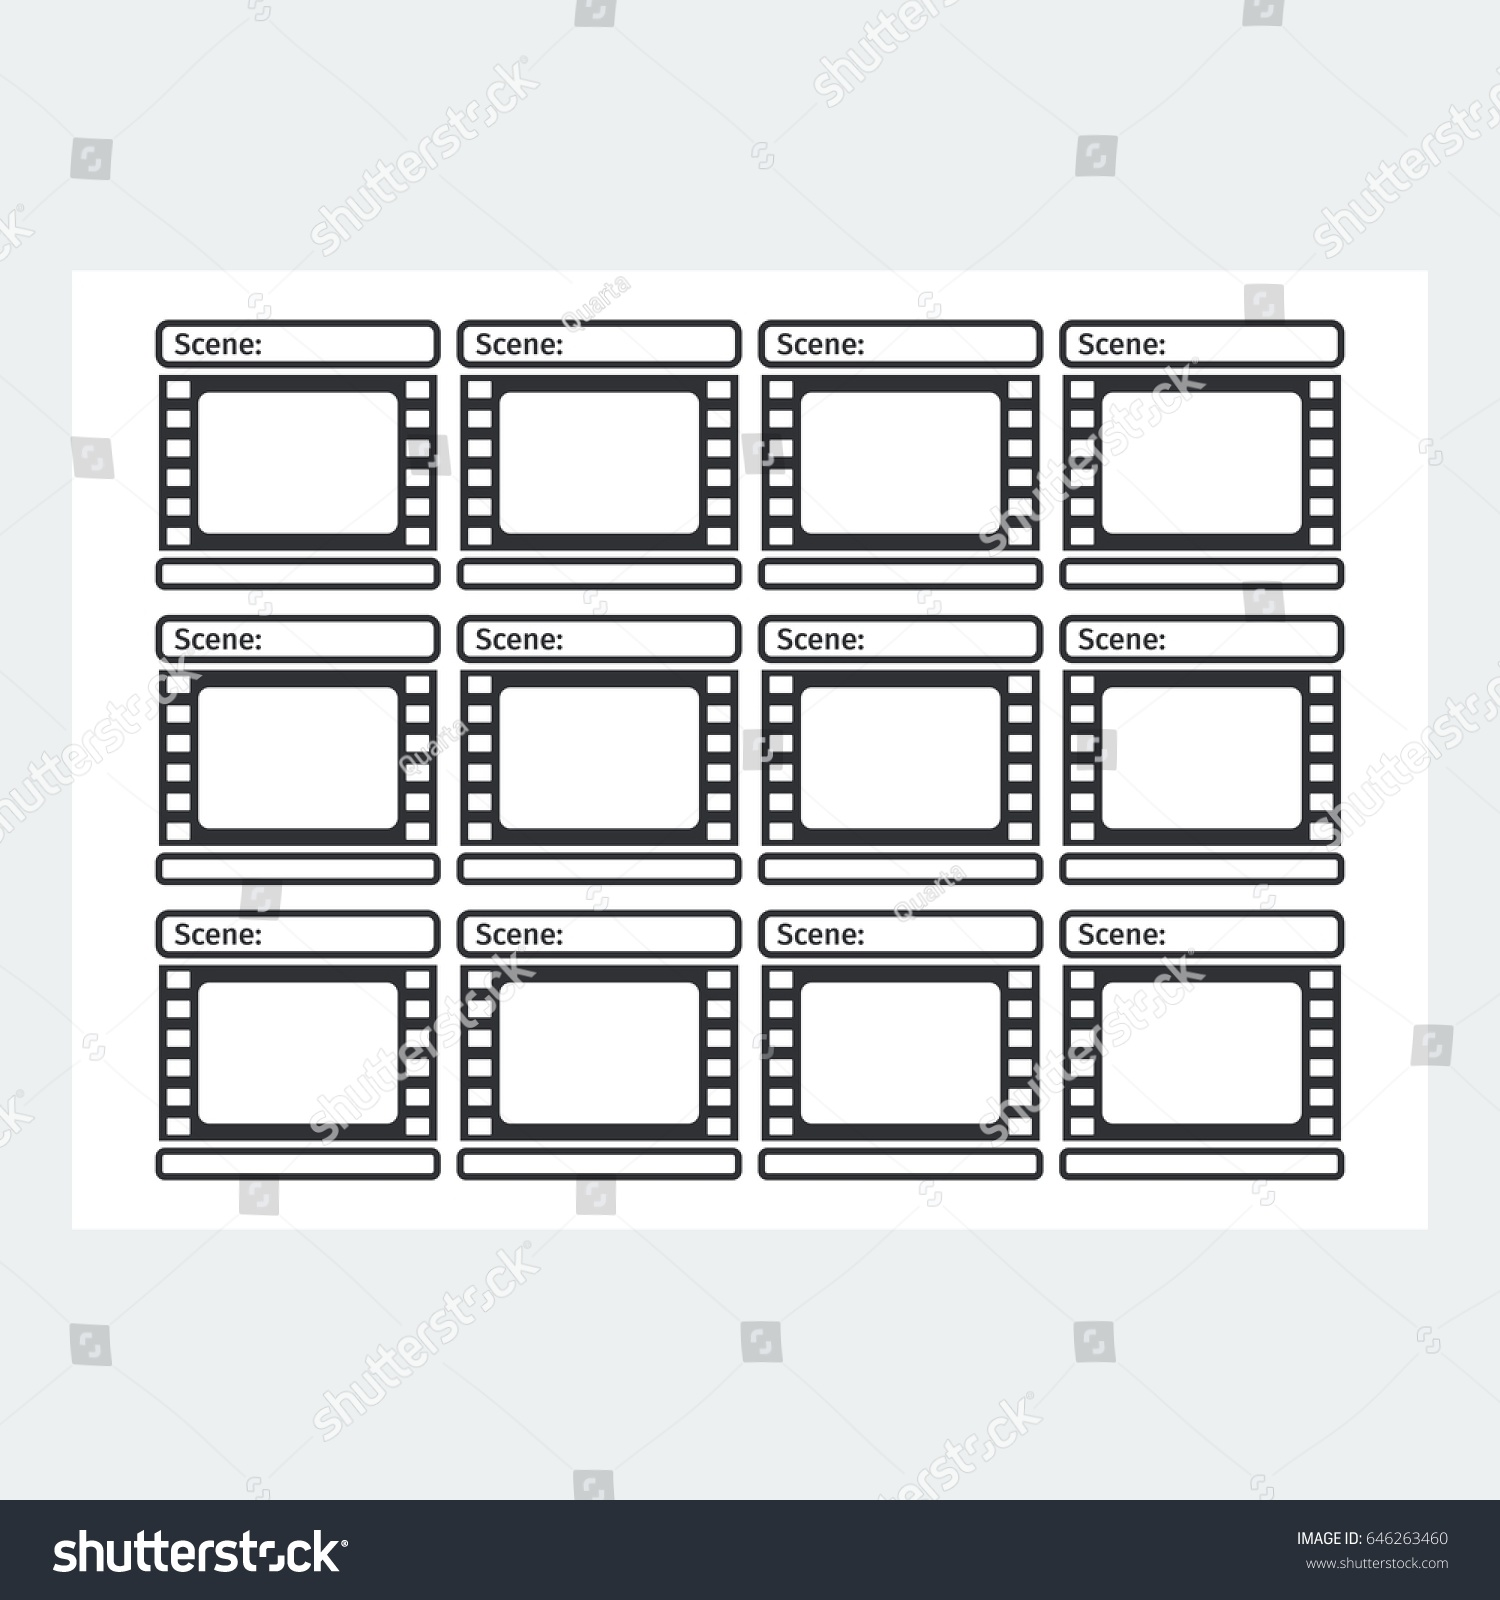 Storyboard Template In Form Of A Film. Scenario For Media Production. Flat  Vector Cartoon